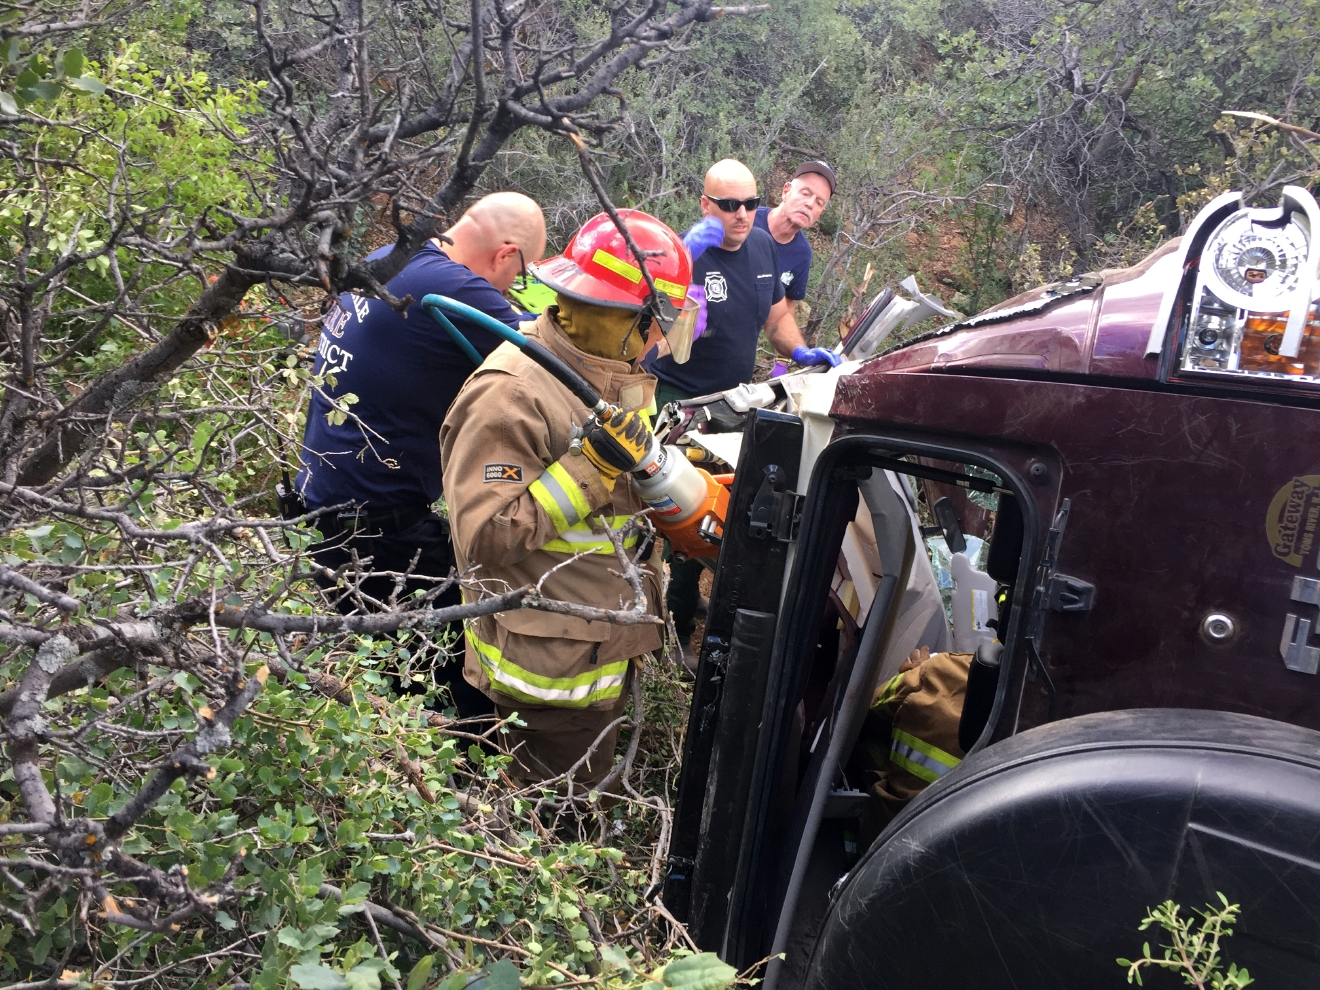 This Photo Provided By Kim Moore Shows Firefighters Working To Extricate A  50 Year